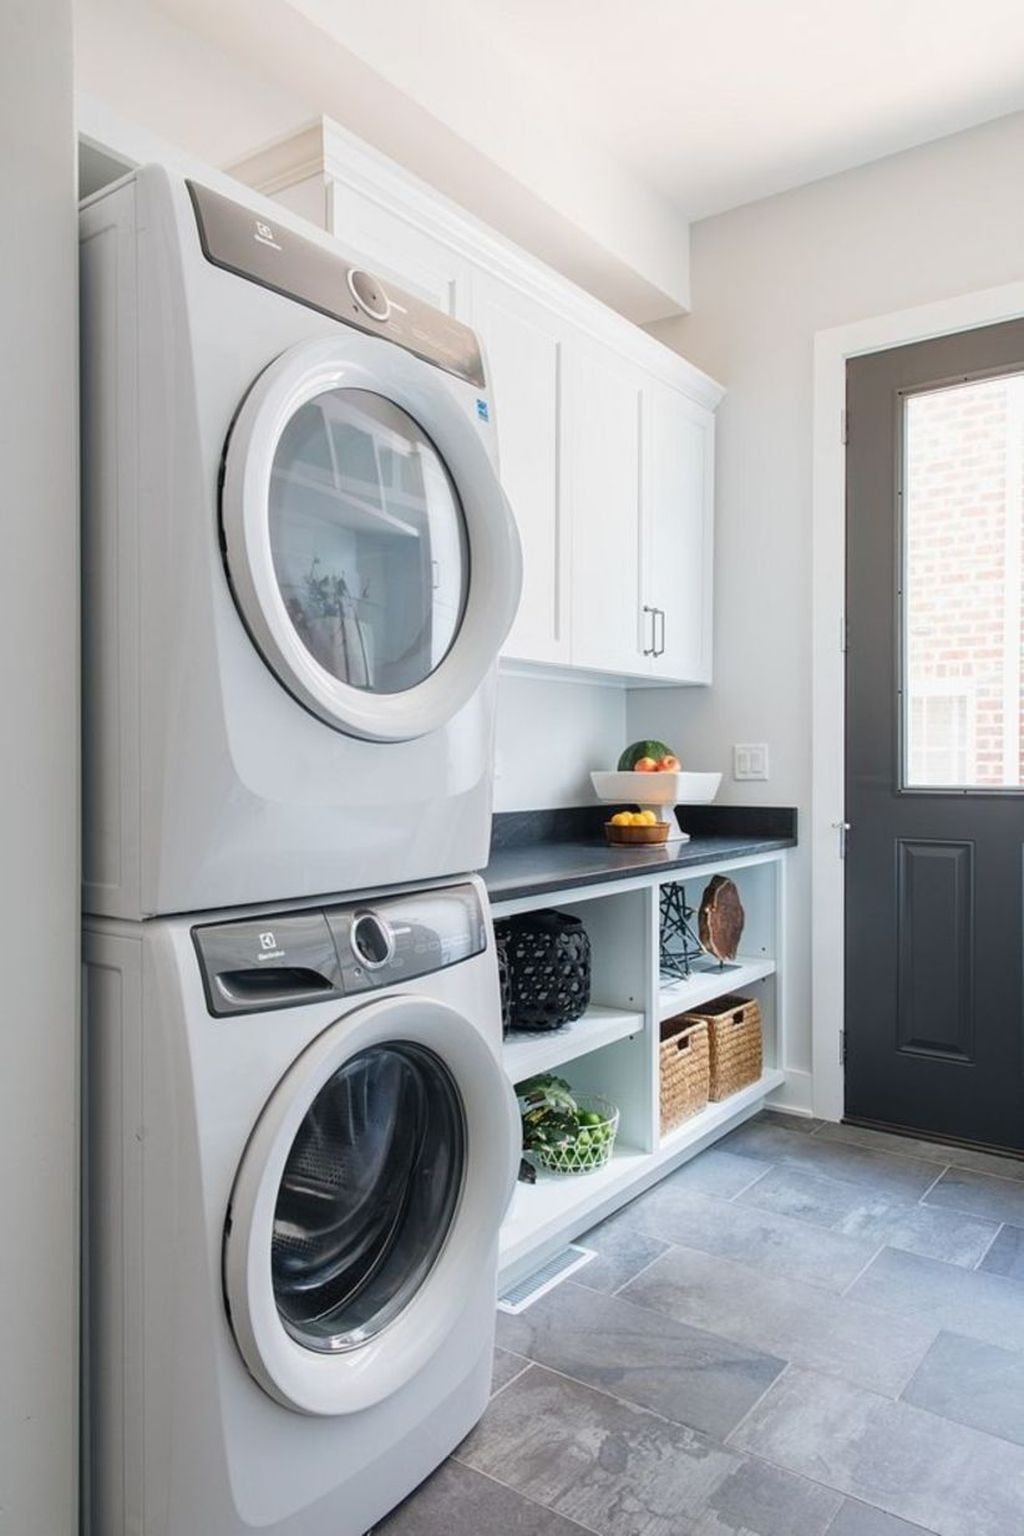 Inspiring Small Laundry Room Design And Decor Ideas 19